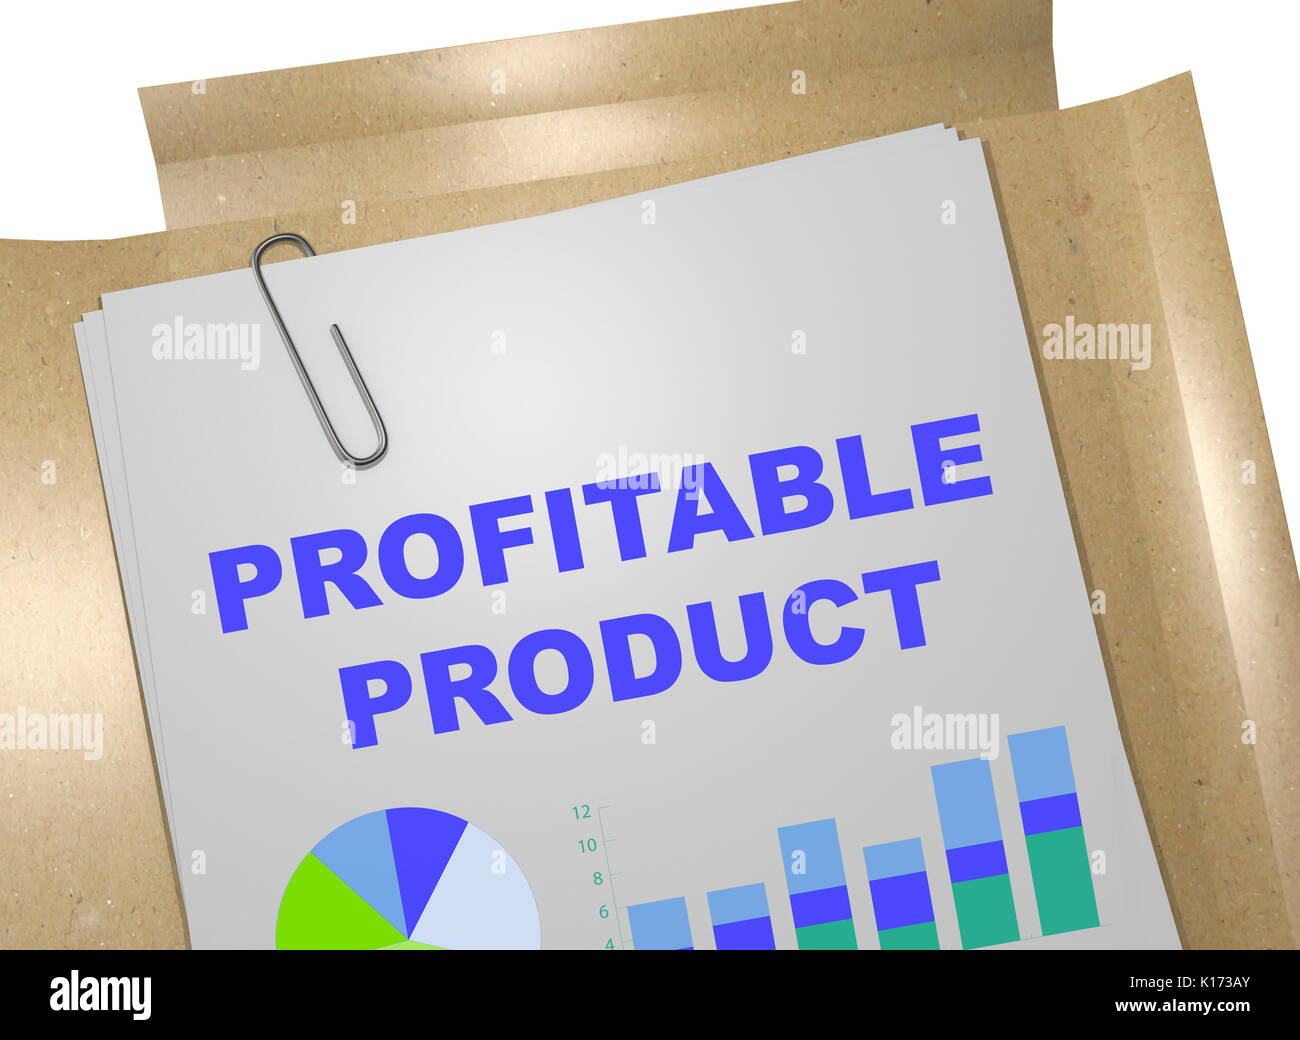 3D illustration of 'PROFITABLE PRODUCT' title on business document - Stock Image